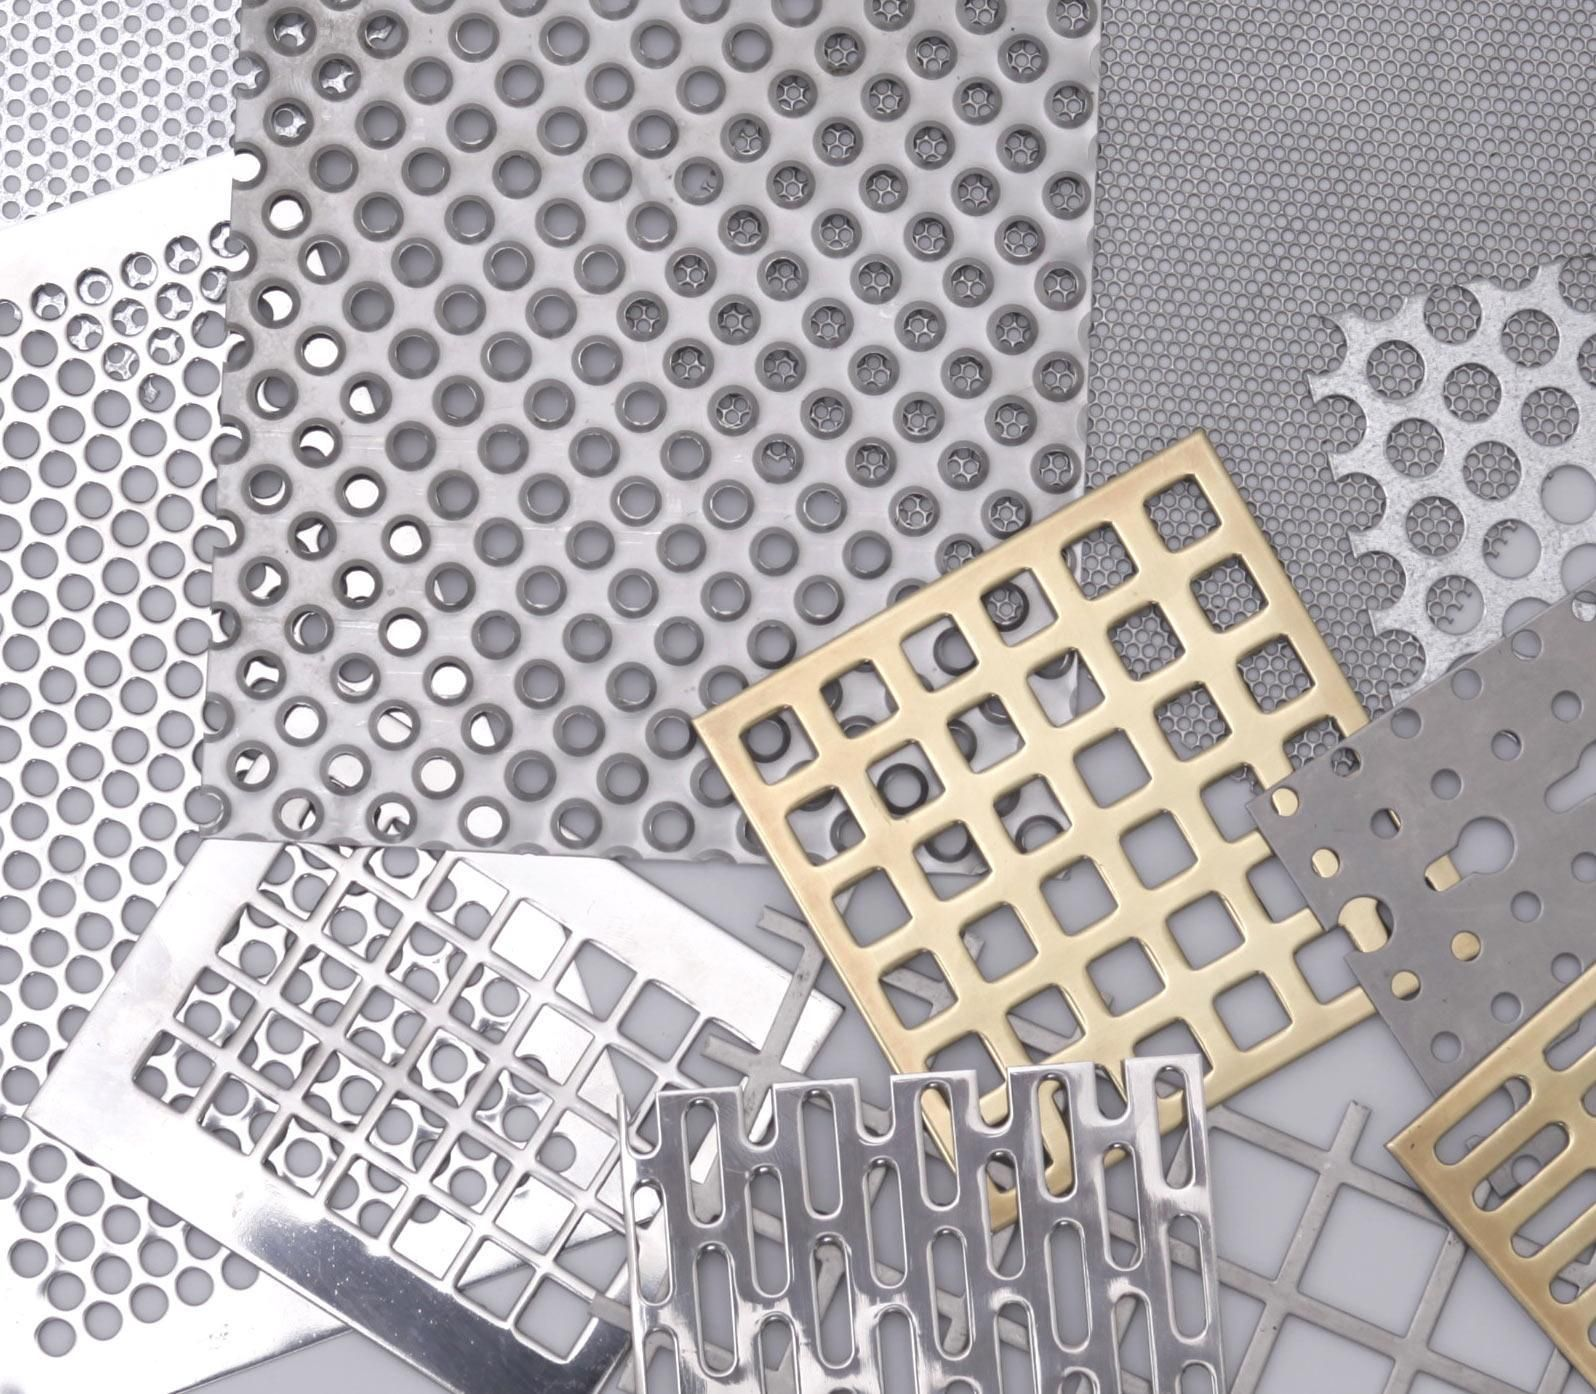 Decoration Perforated Metal Sheet Wire Mesh In 2020 Perforated Metal Perforated Plate Metal Mesh Sheet